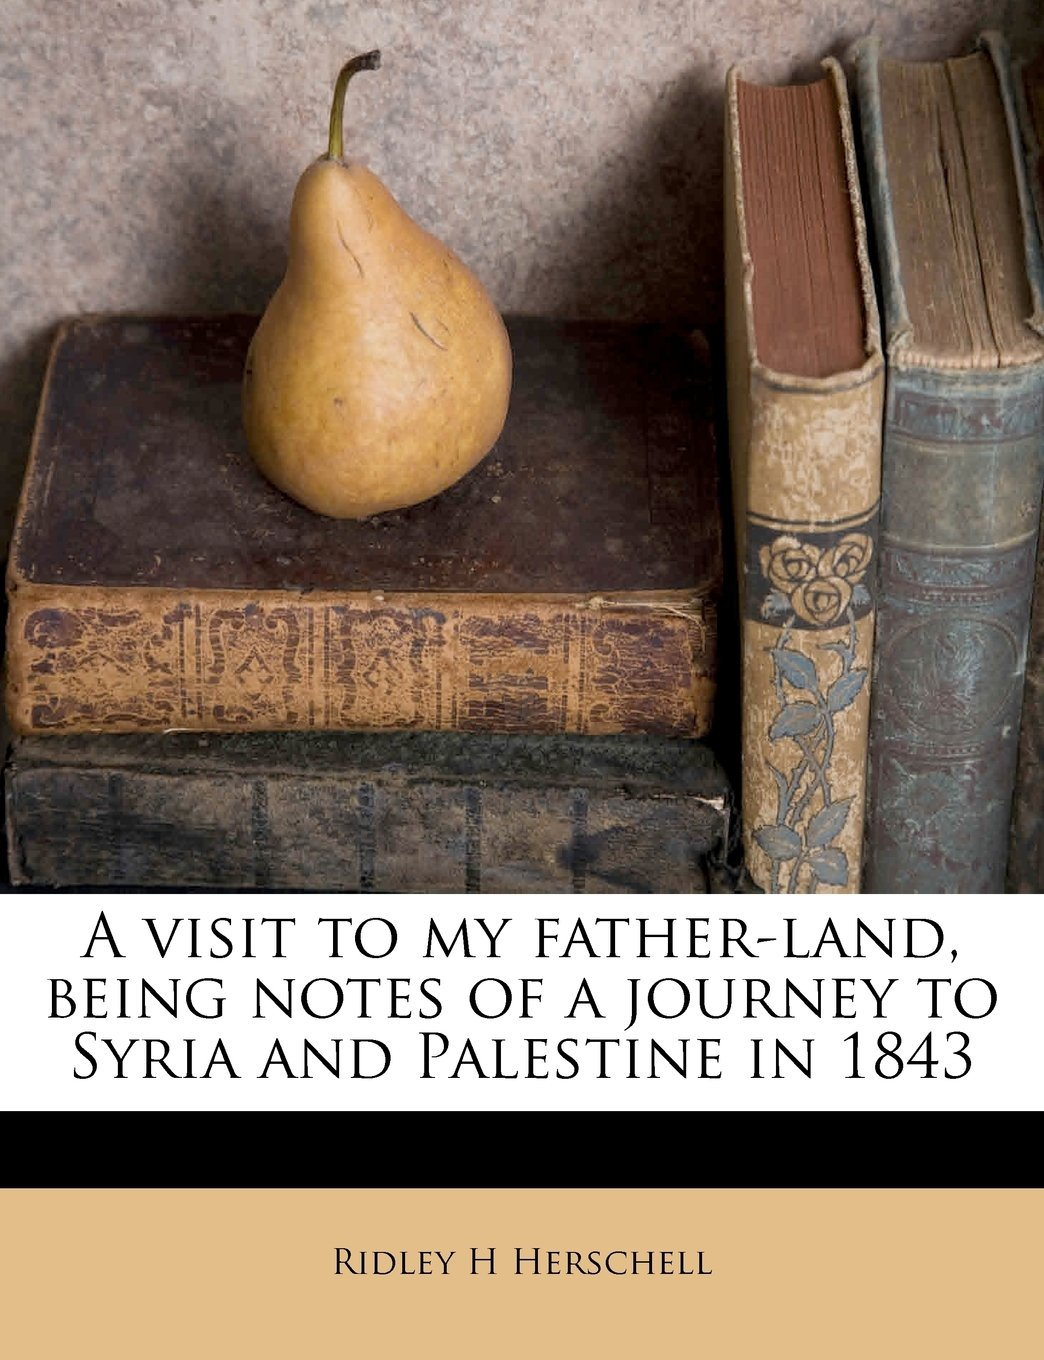 Read Online A visit to my father-land, being notes of a journey to Syria and Palestine in 1843 PDF